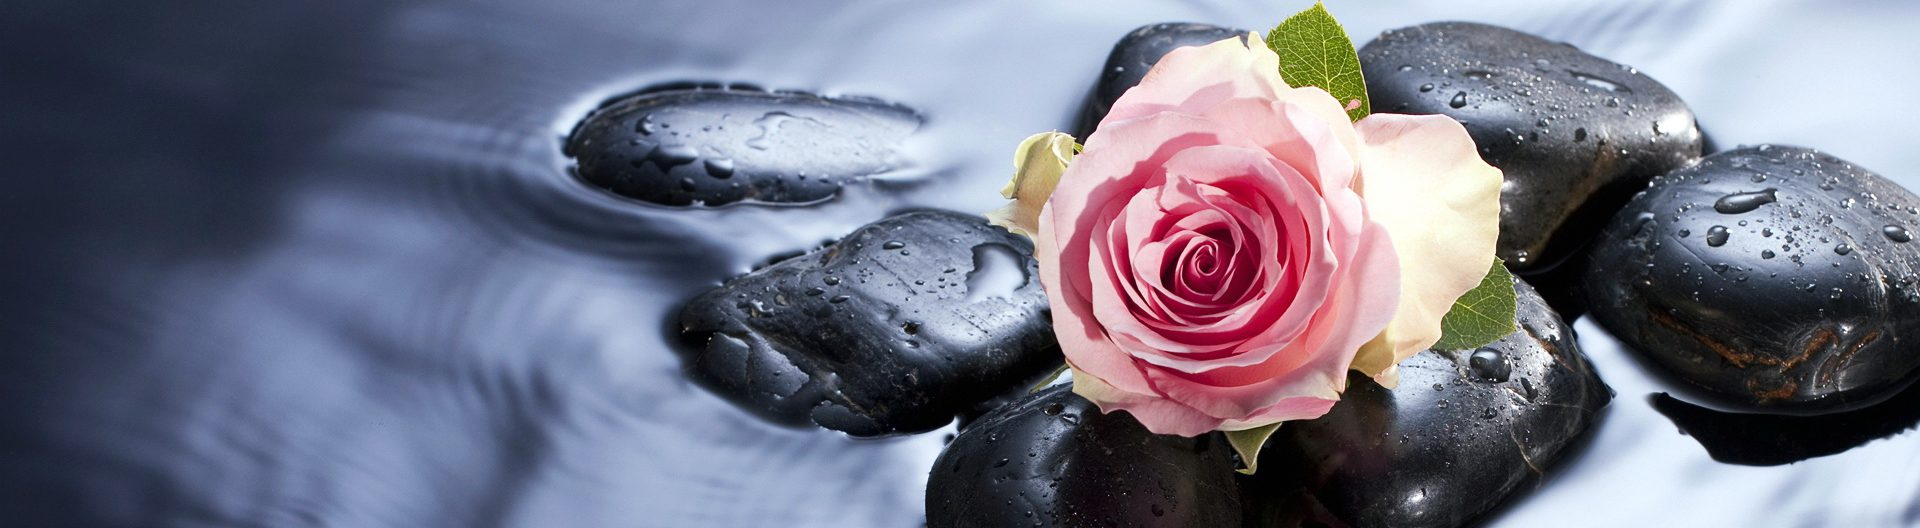 rose-bud-drop-water-stones-1920x1080